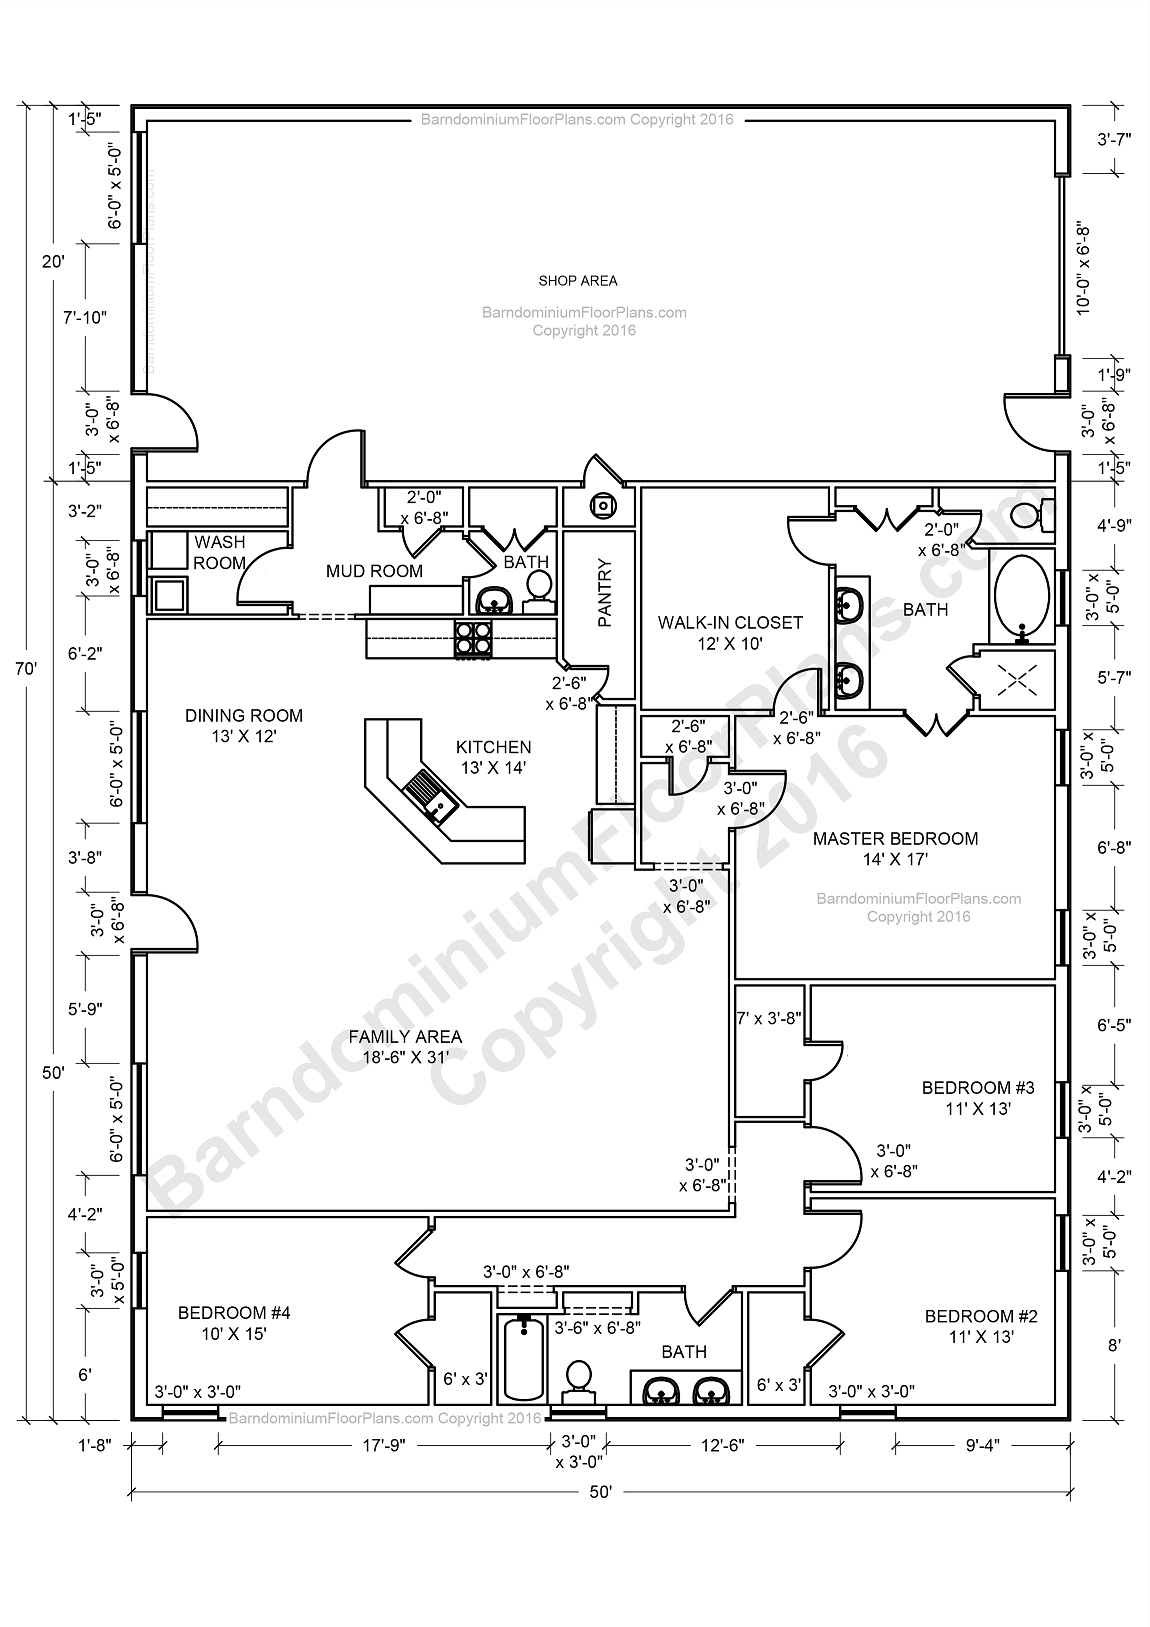 Barndominium floor plans barndominium floor plans 1 800 for House floor plan builder